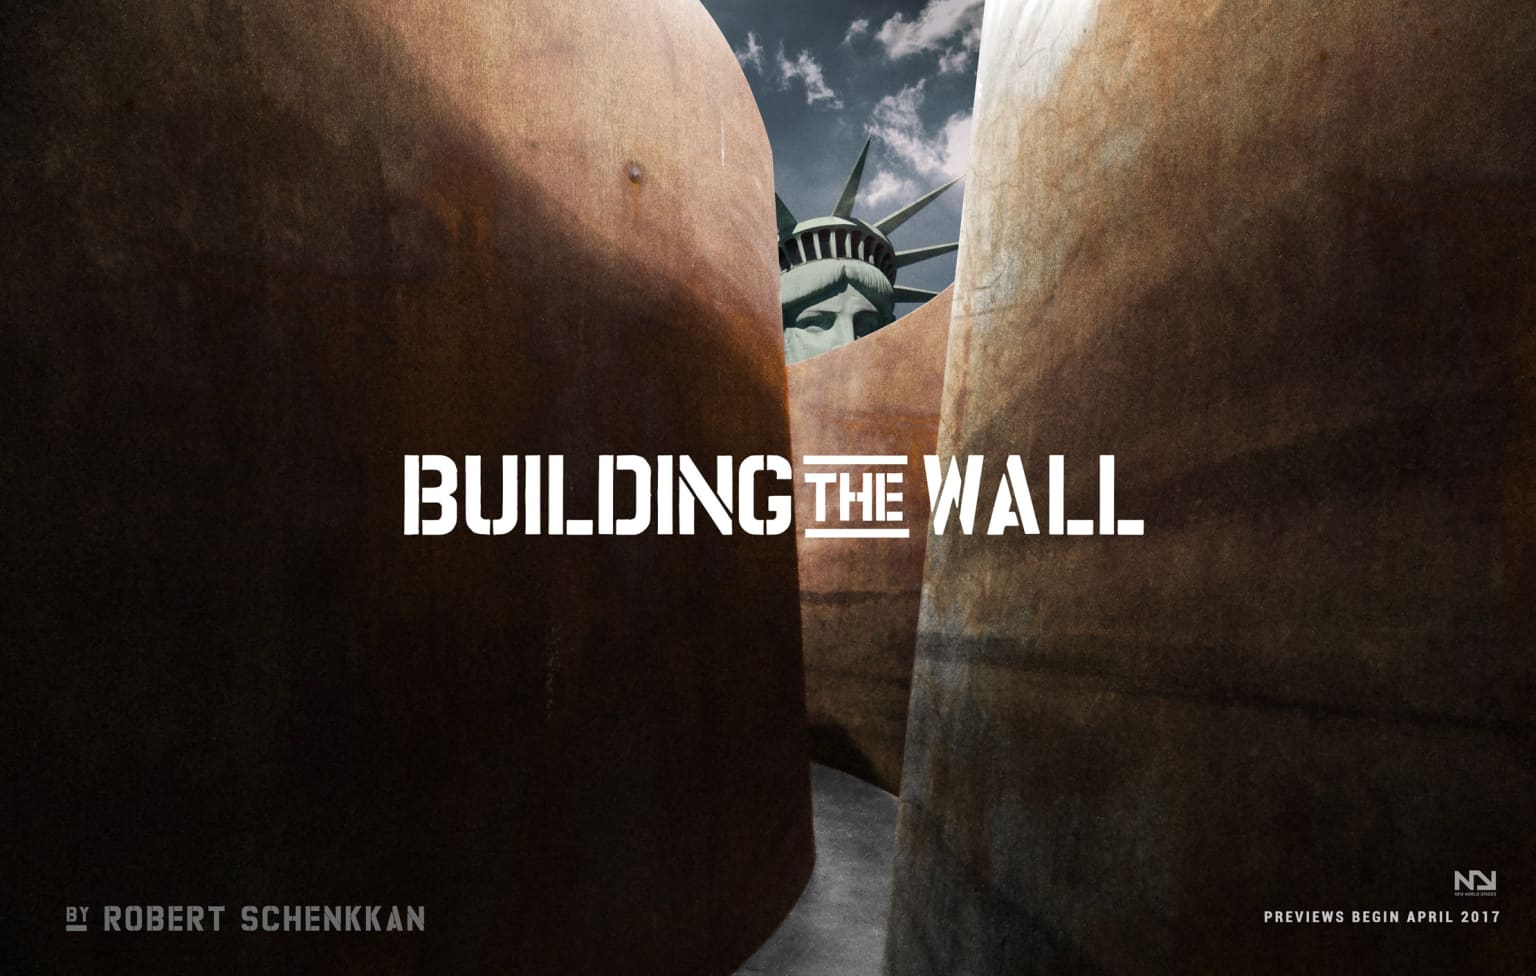 Building the Wall